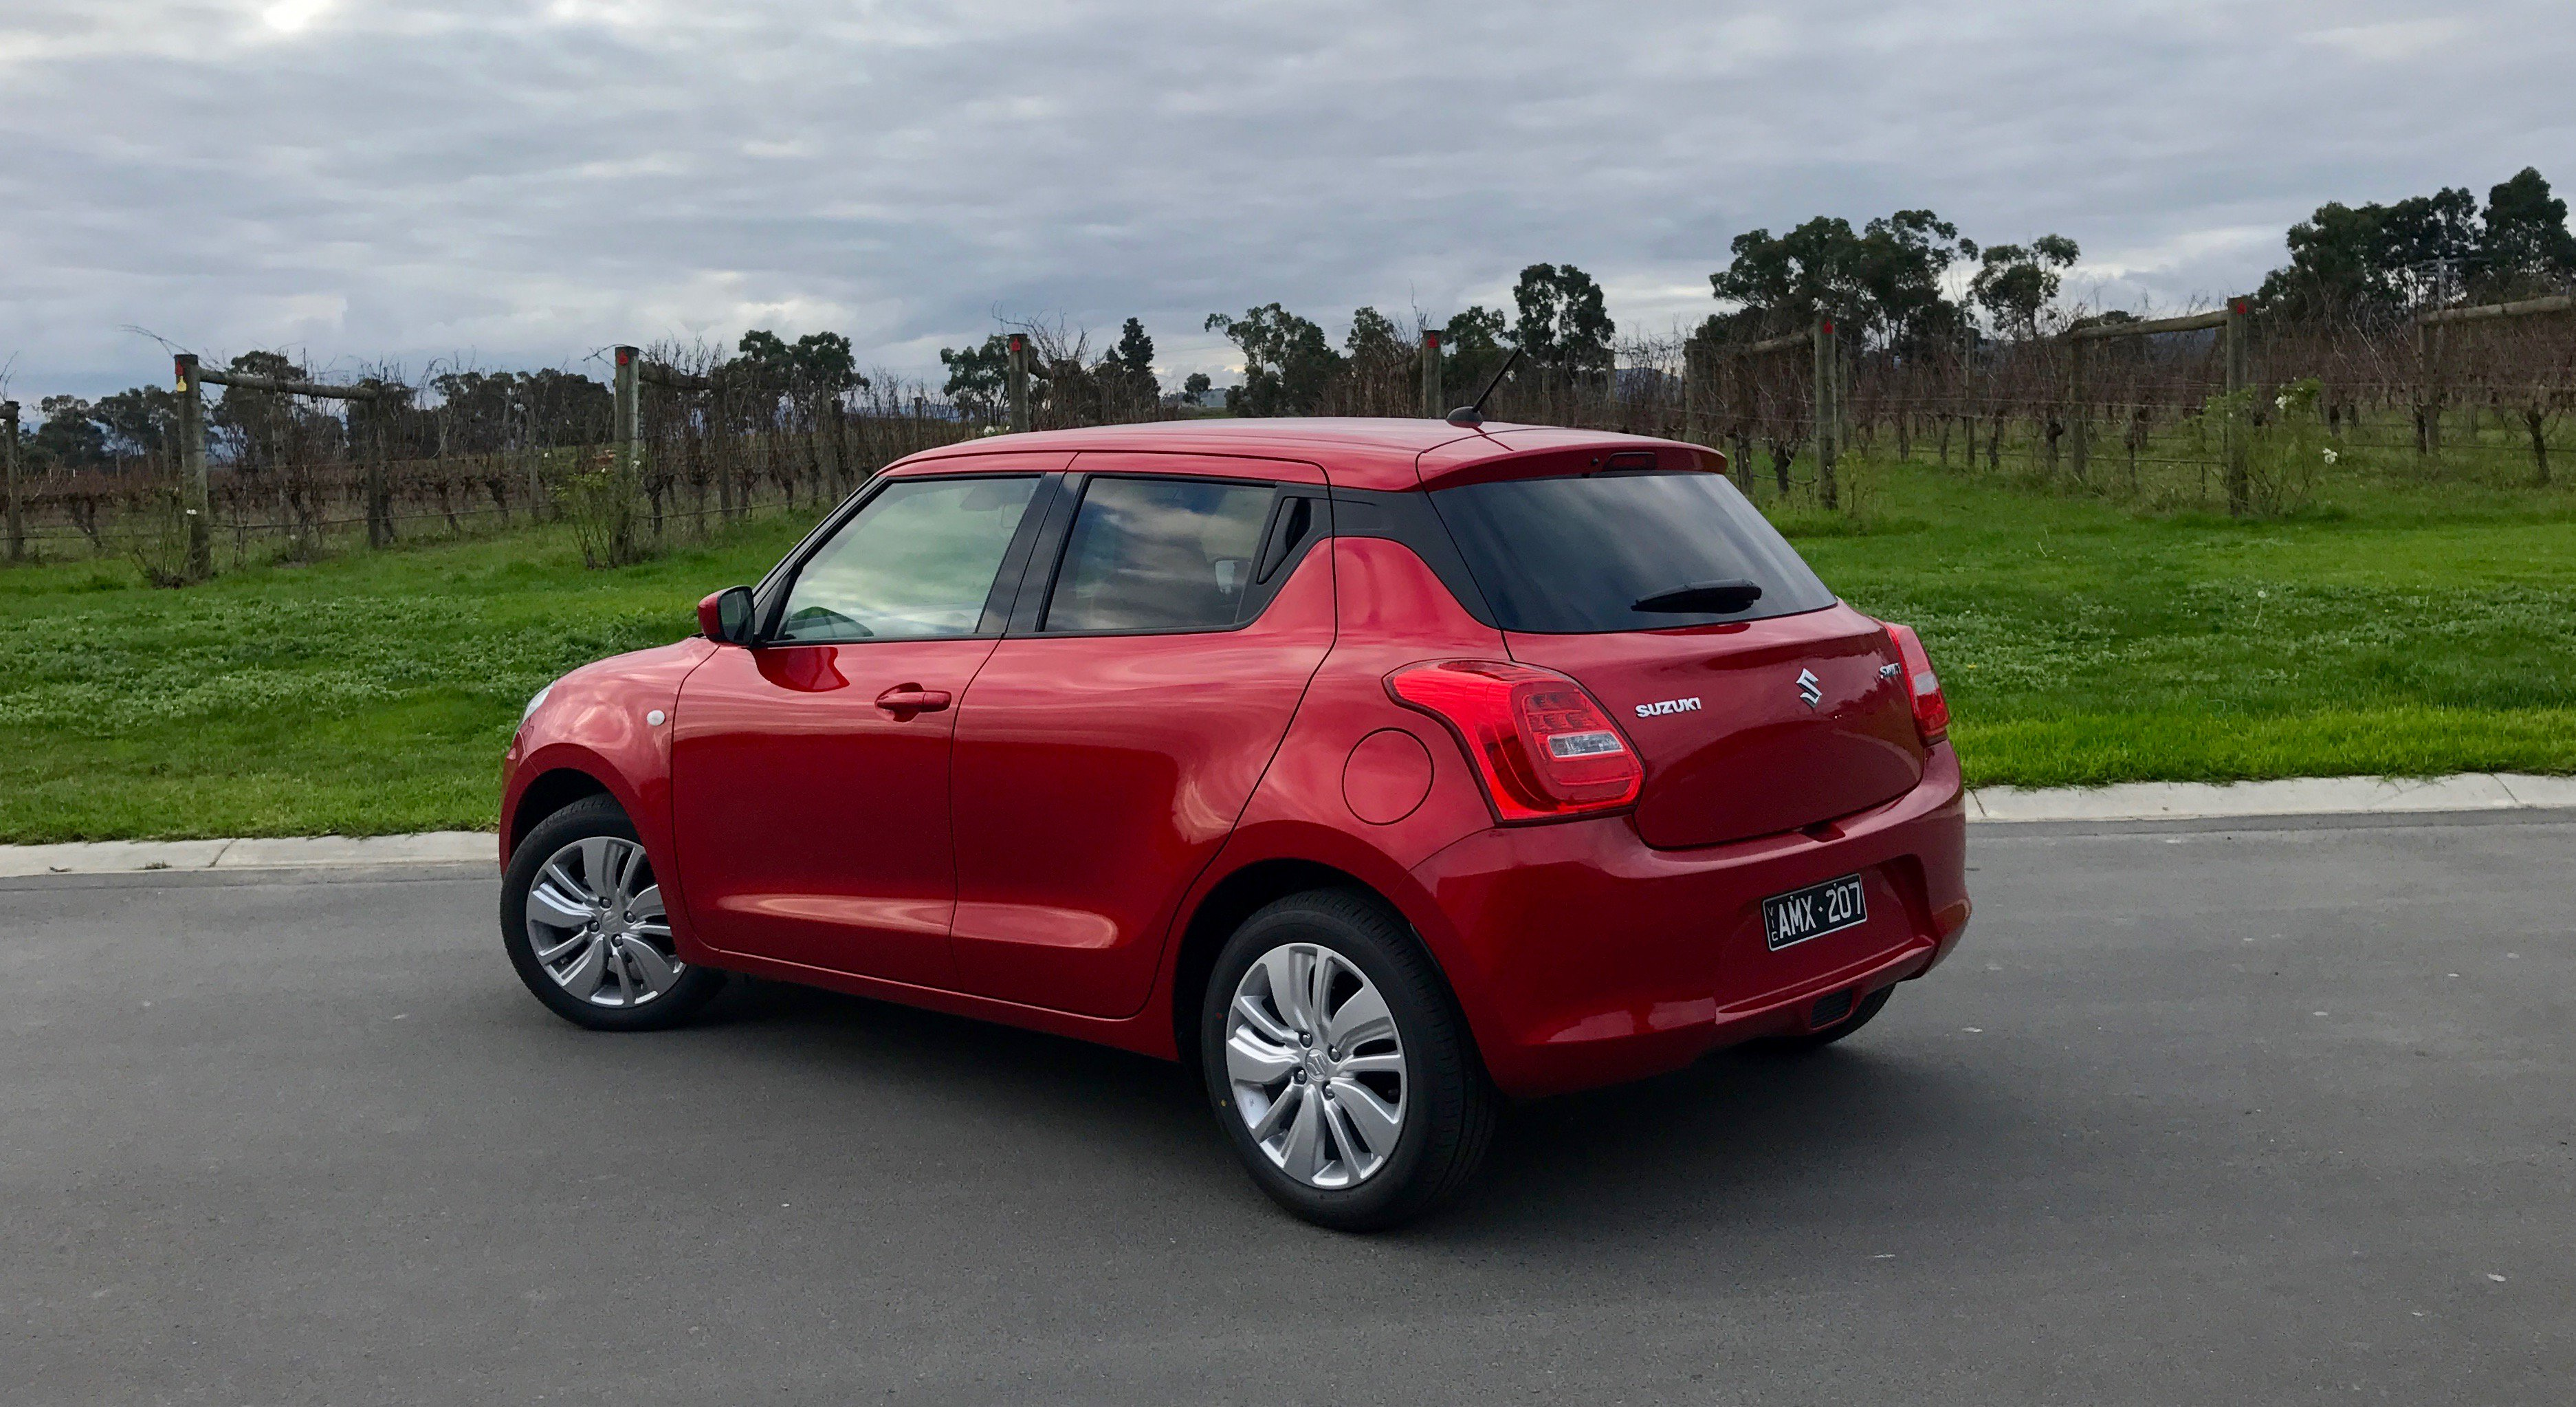 Suzuki swift photo - 6